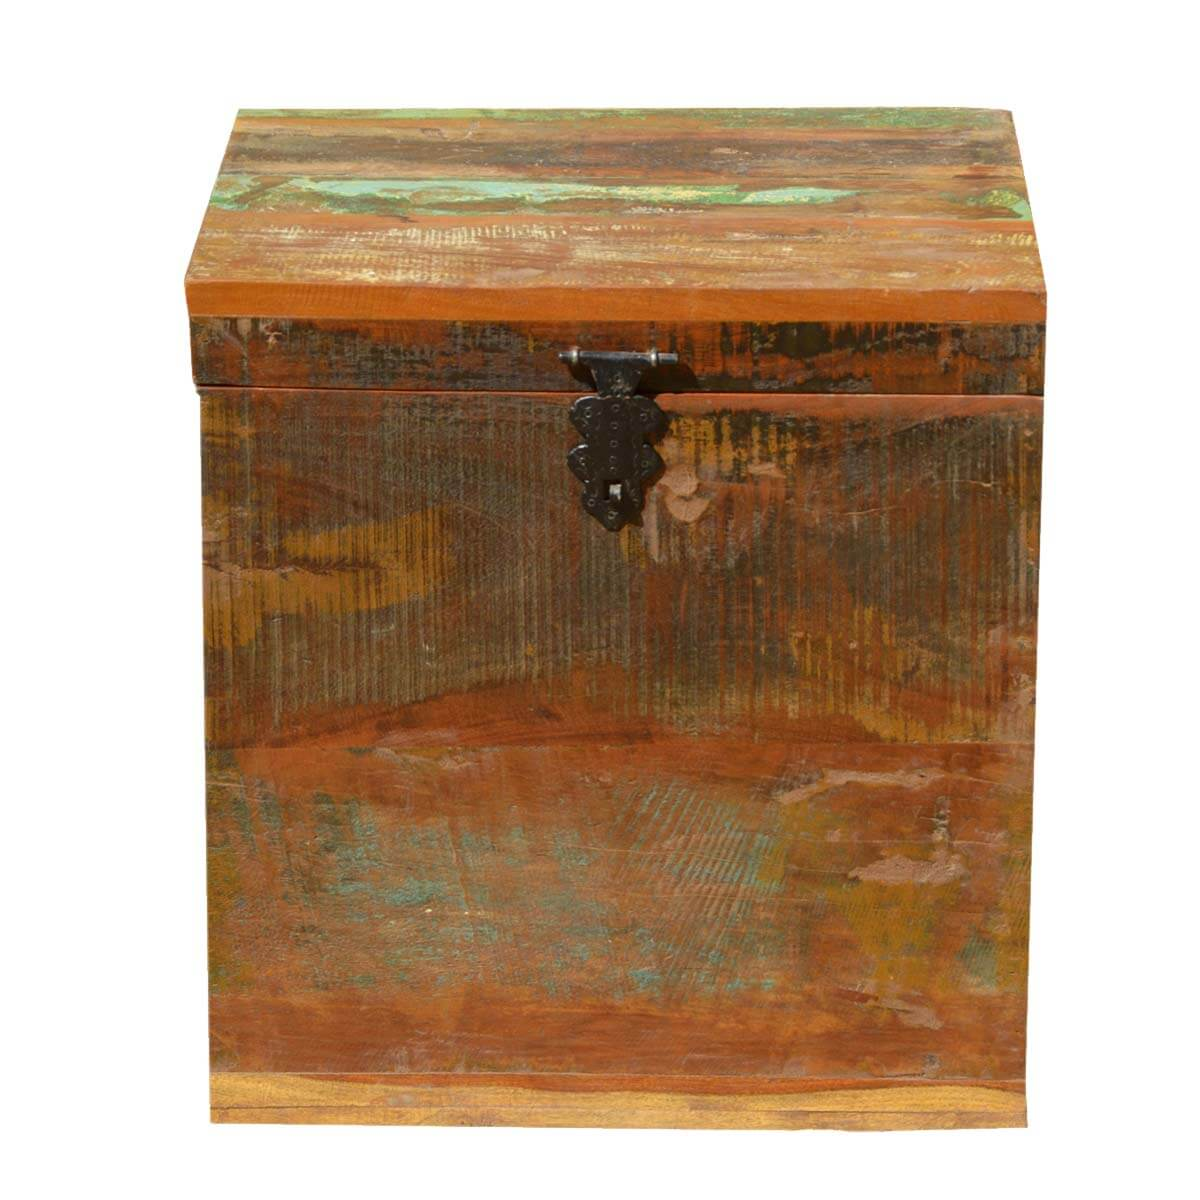 Grinnell Reclaimed Wood Rustic End Table Storage Cube Chest